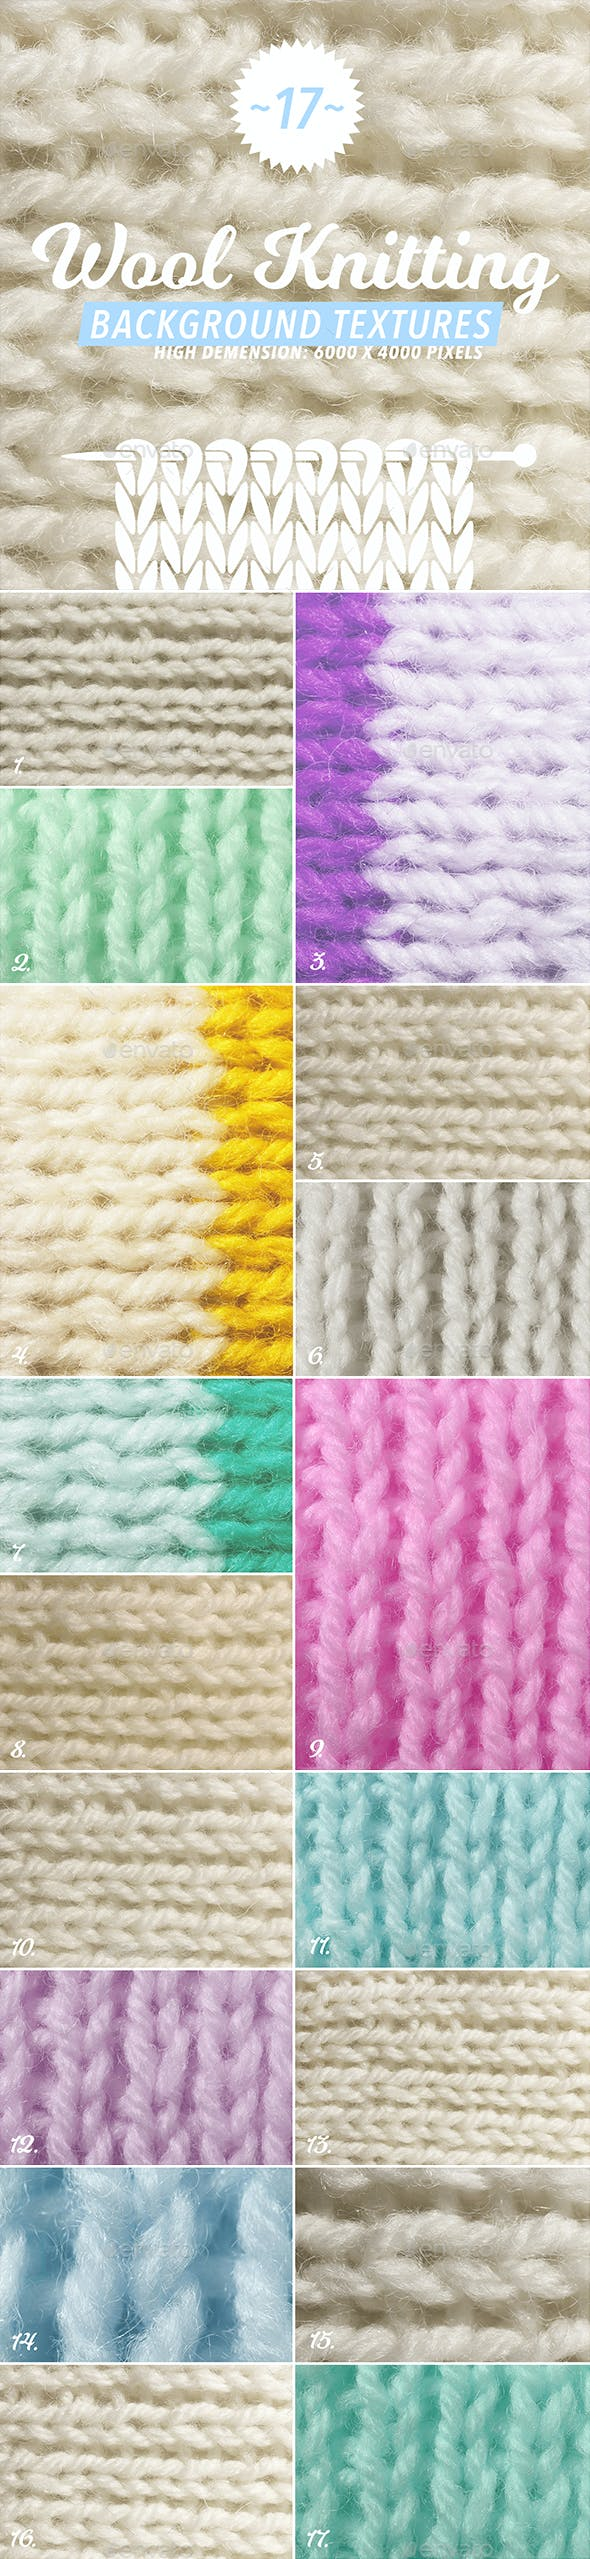 17 Wool Knitting Textures - 3DOcean Item for Sale